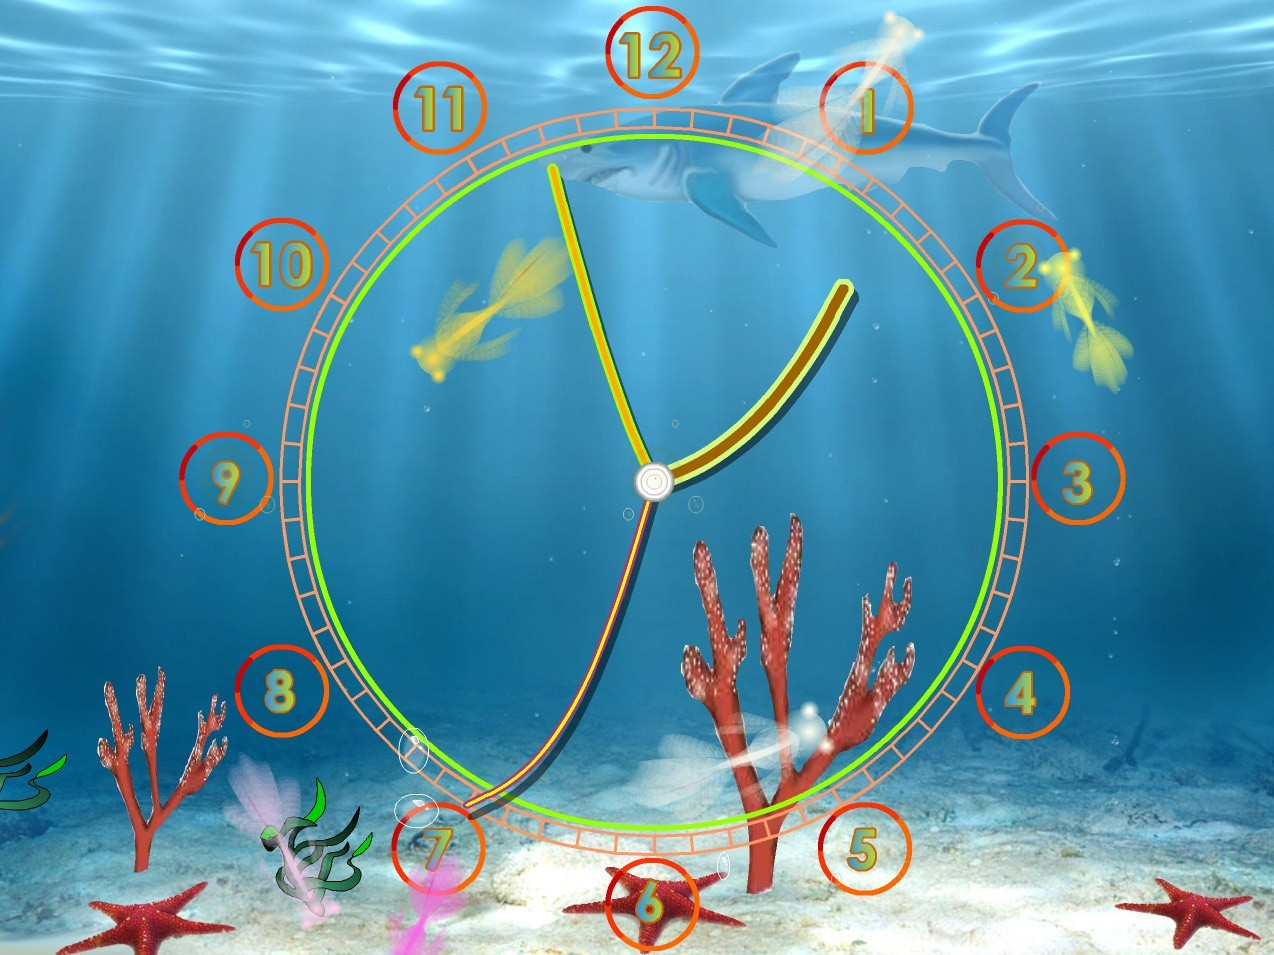 Aquarium Clock Live Animated Wallpaper   Even aquarium fishes want to 1274x955